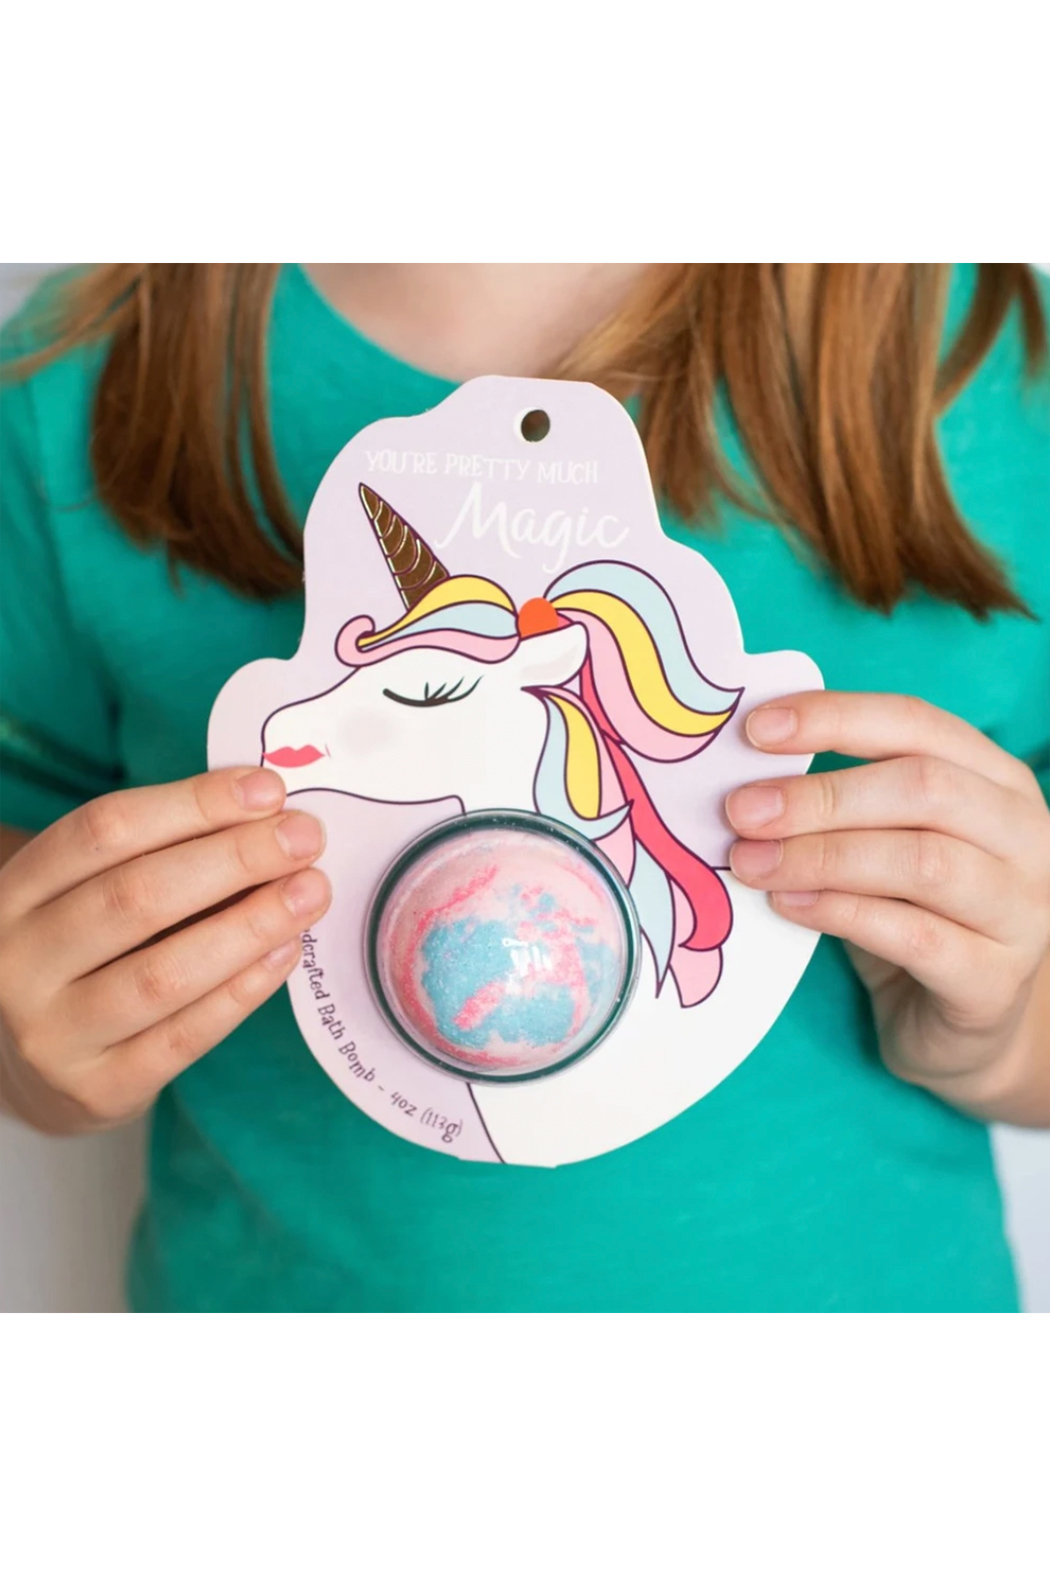 Cait + Co You're Pretty Much Magic Unicorn Bath Bomb - Rosewater & Lemonade - Side Cropped Image